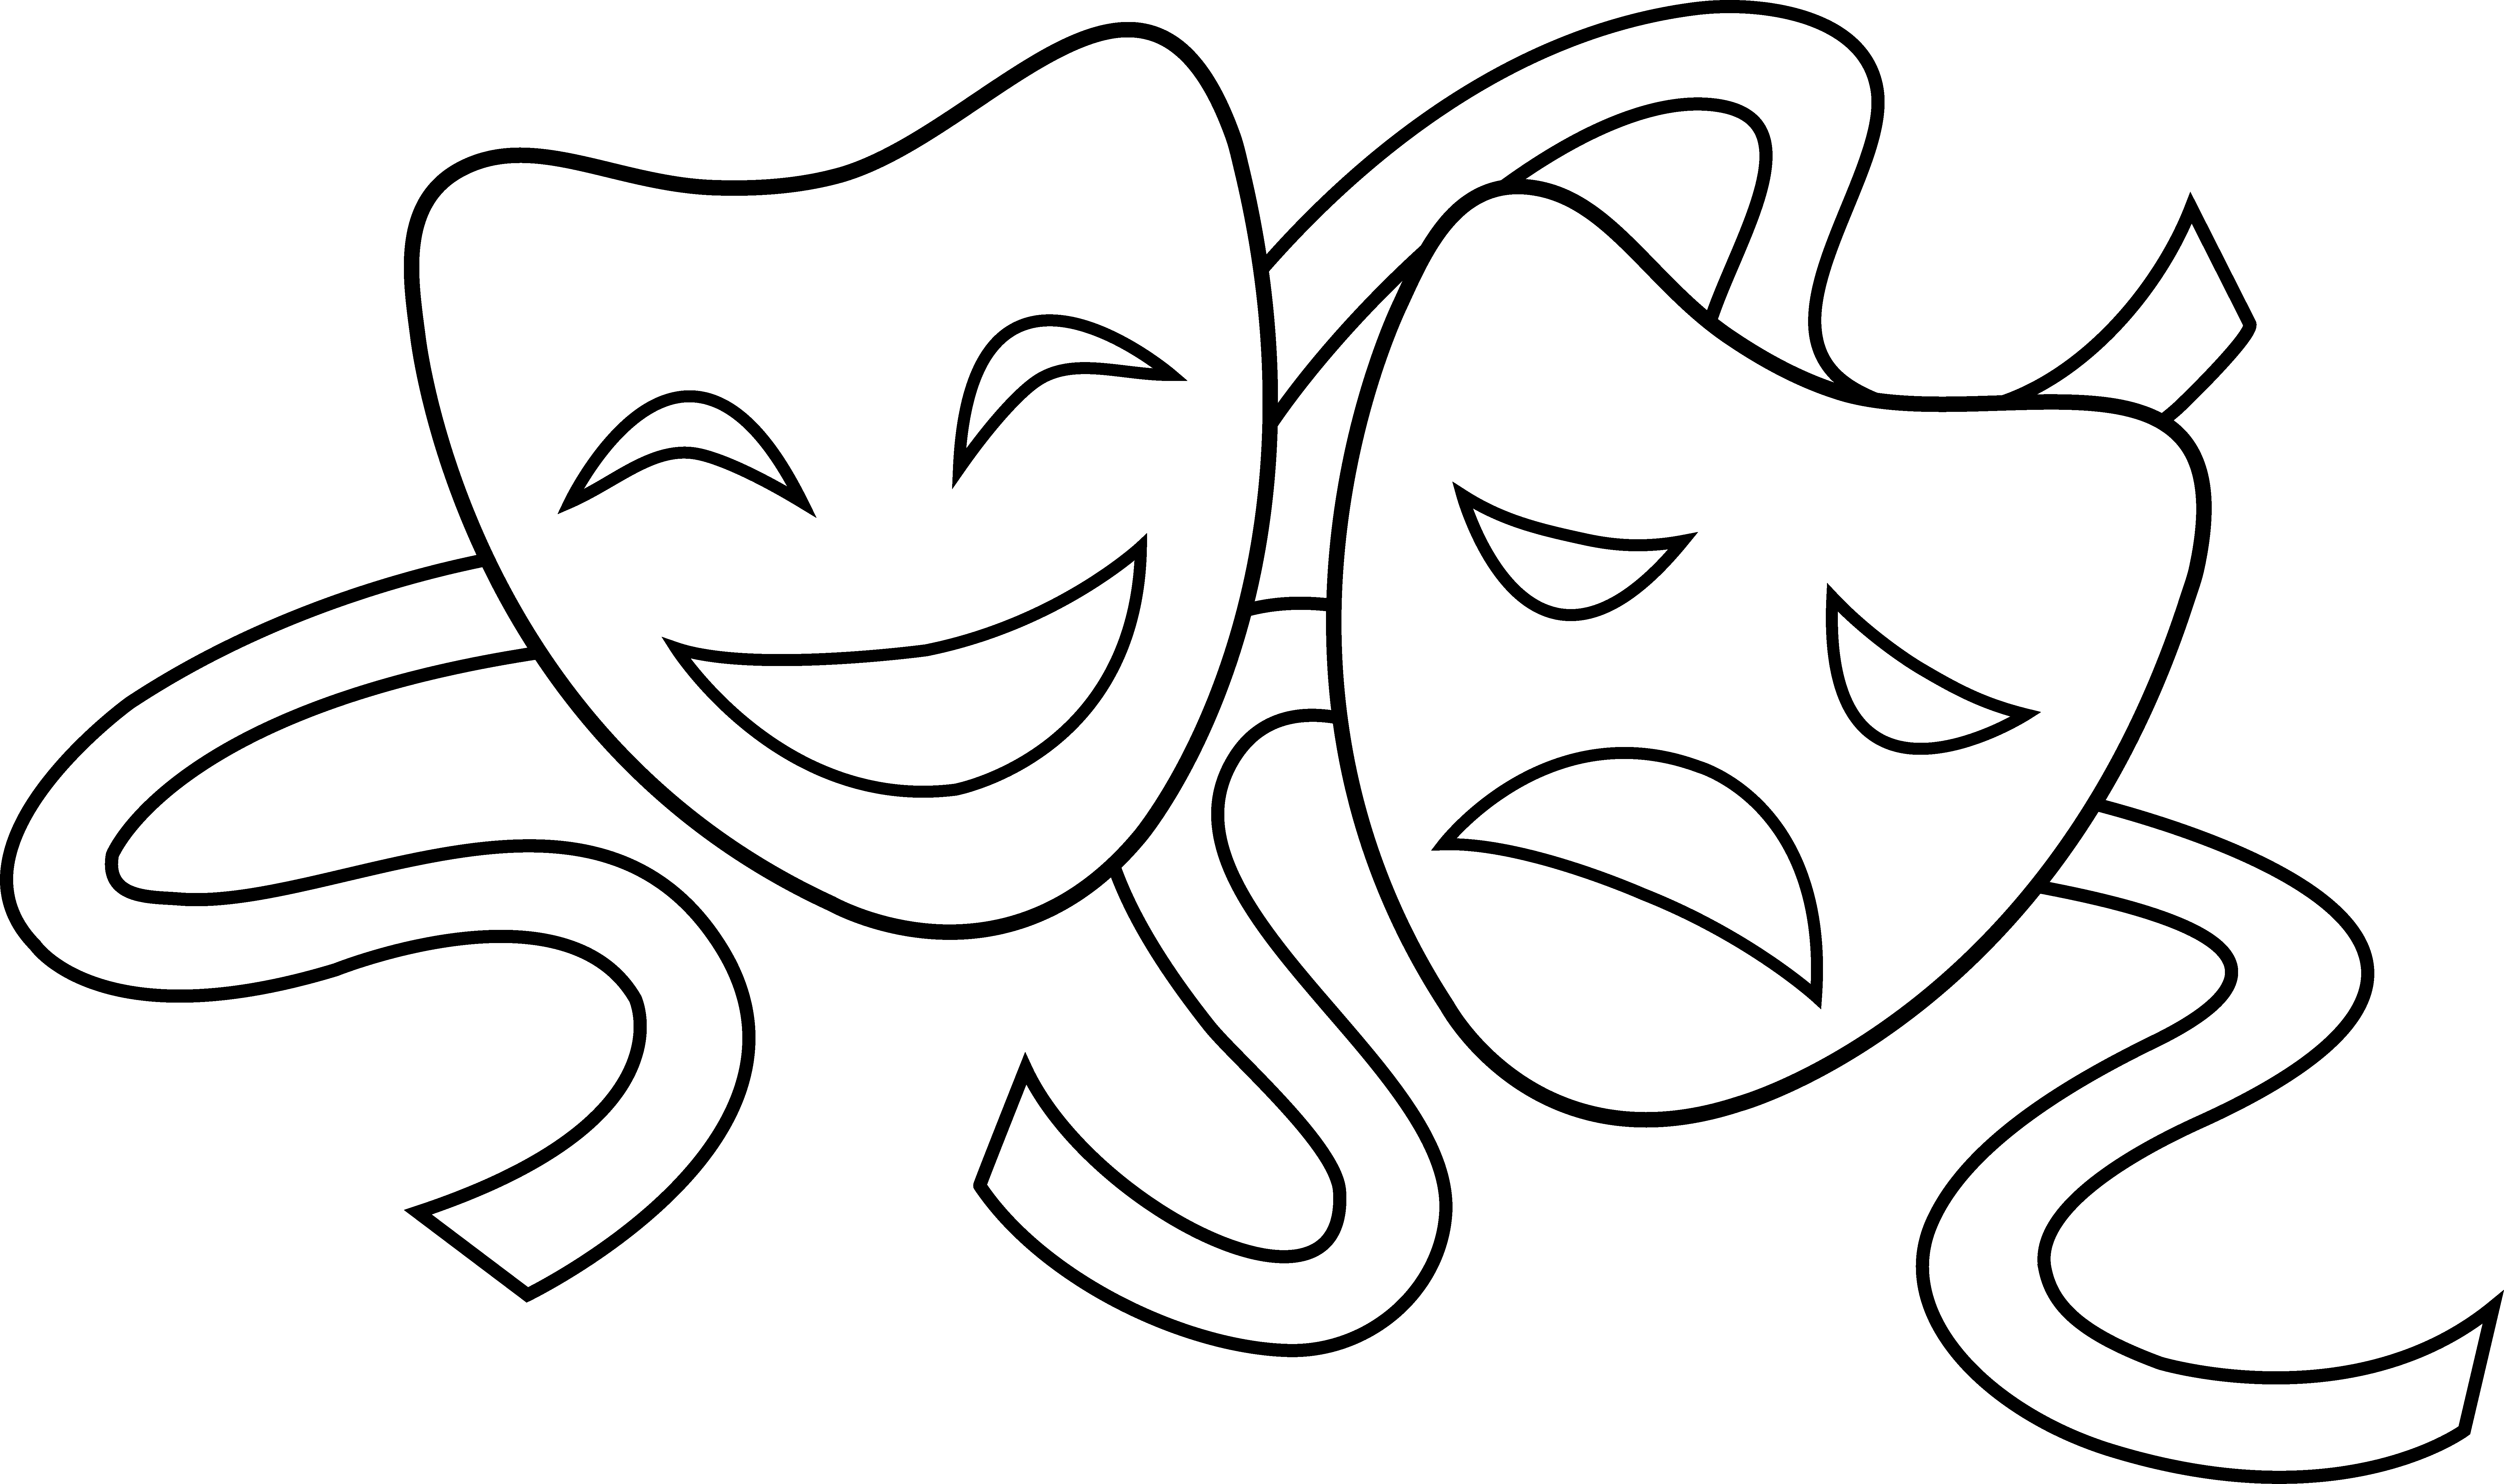 Theater masks outline signs. Cinema clipart drama greek mask vector freeuse stock